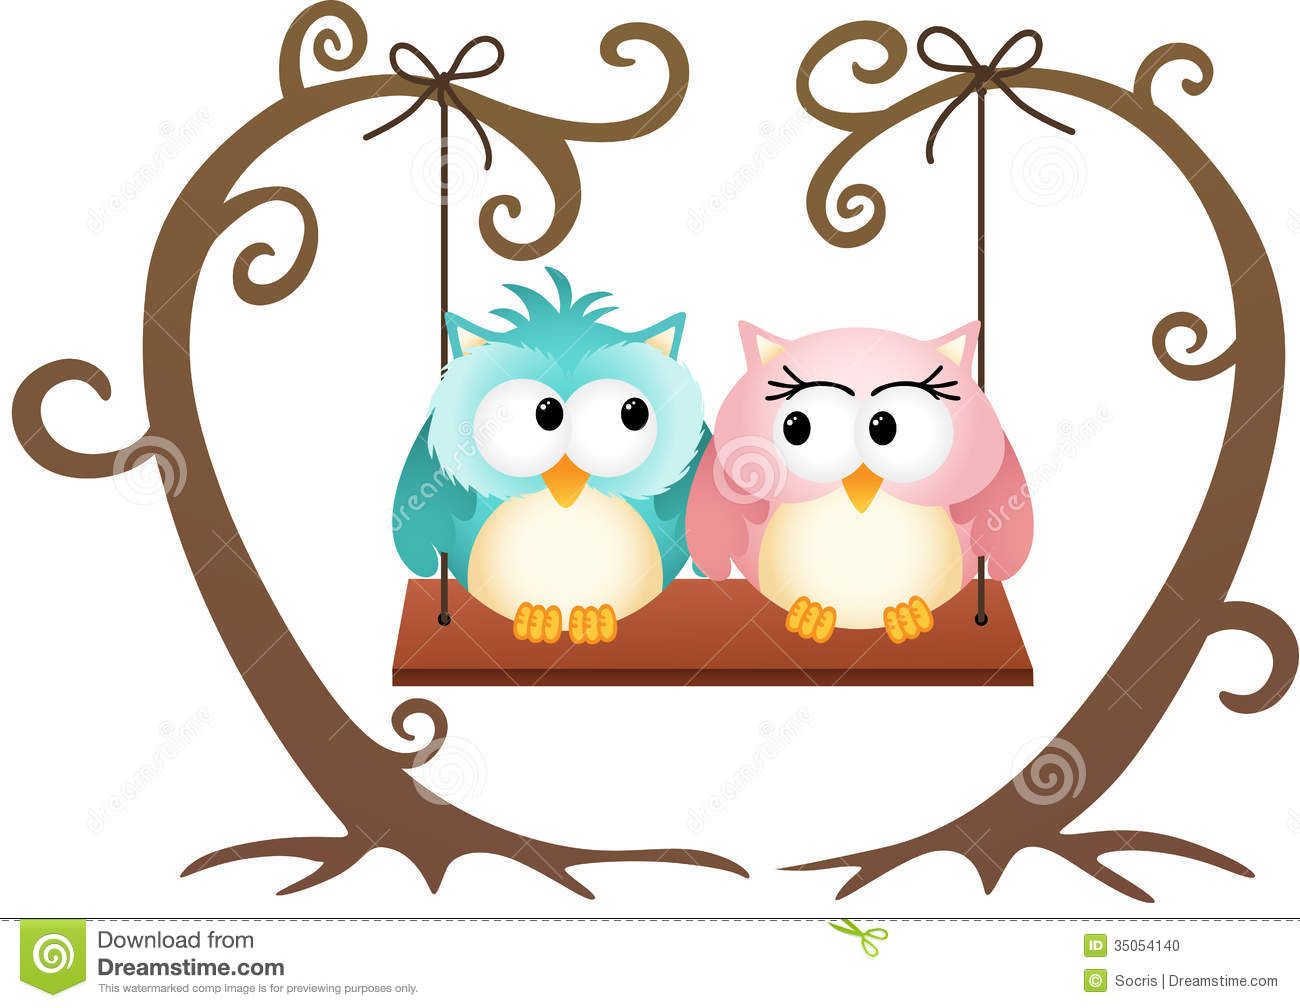 Cute owl love drawing - photo#11